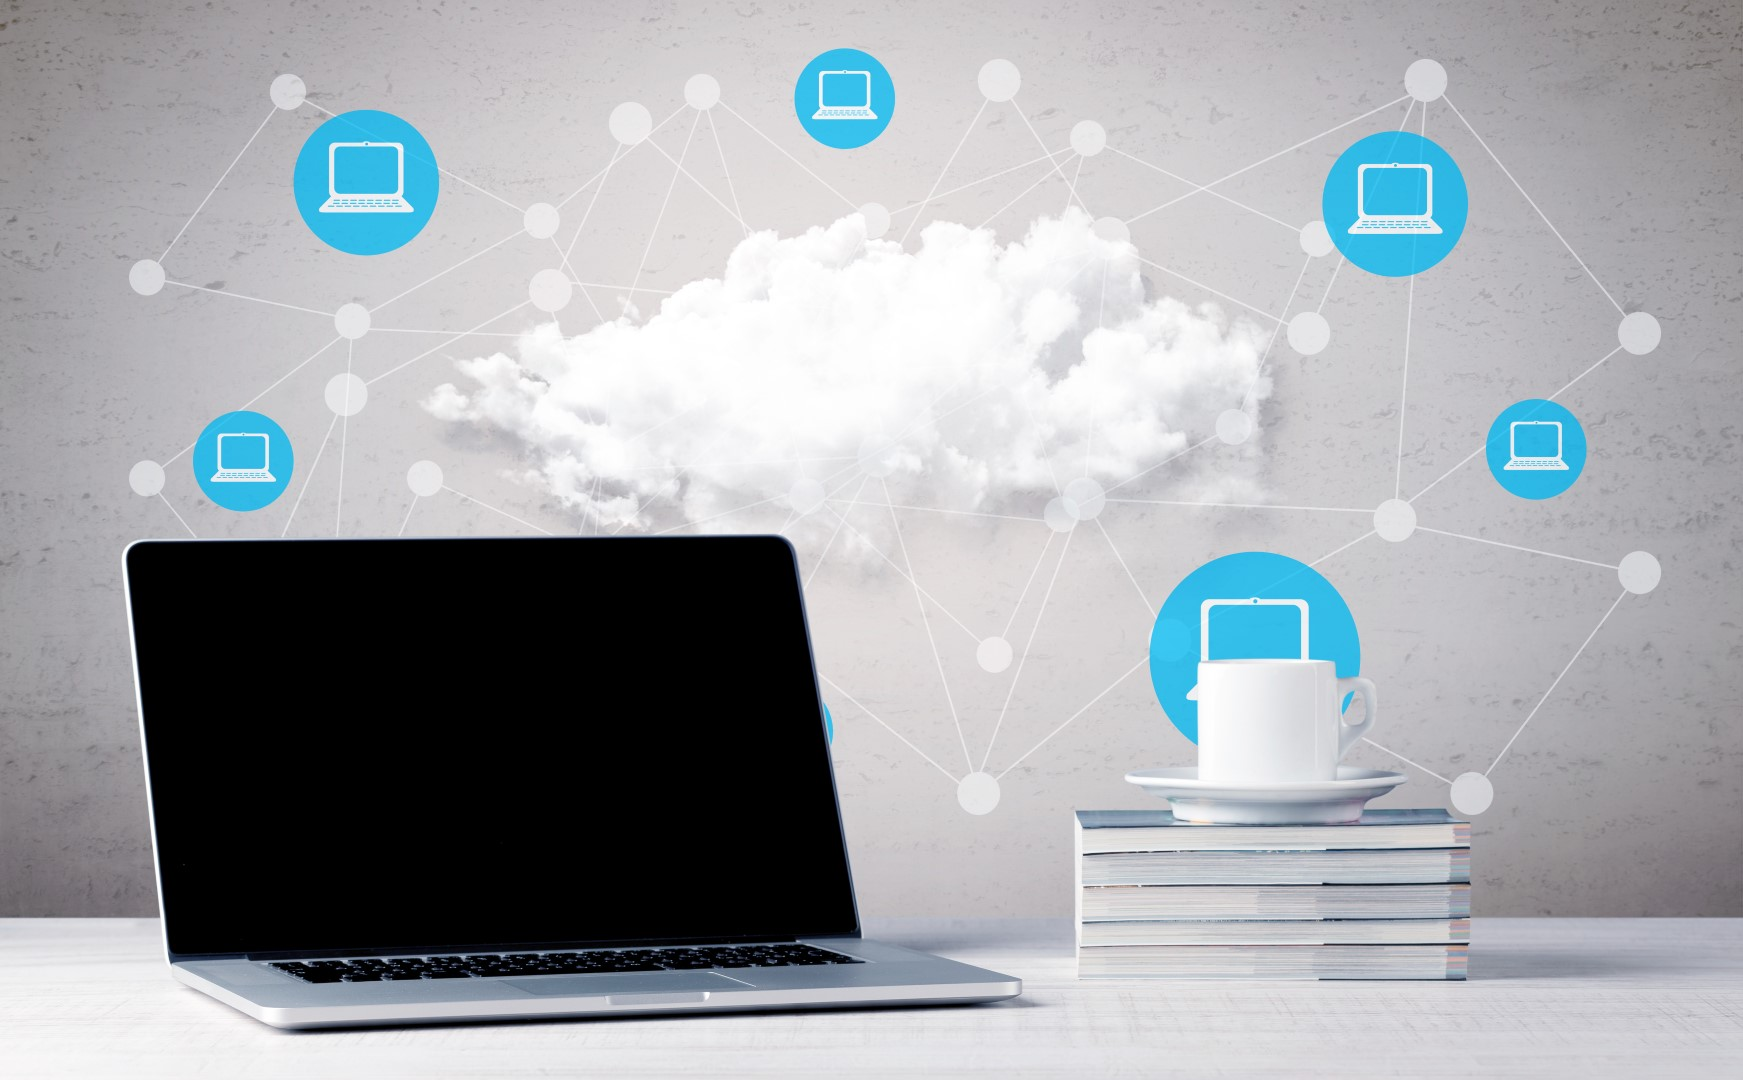 mindSHIFT Ranked Ninth Among Top 100 Cloud Services Providers